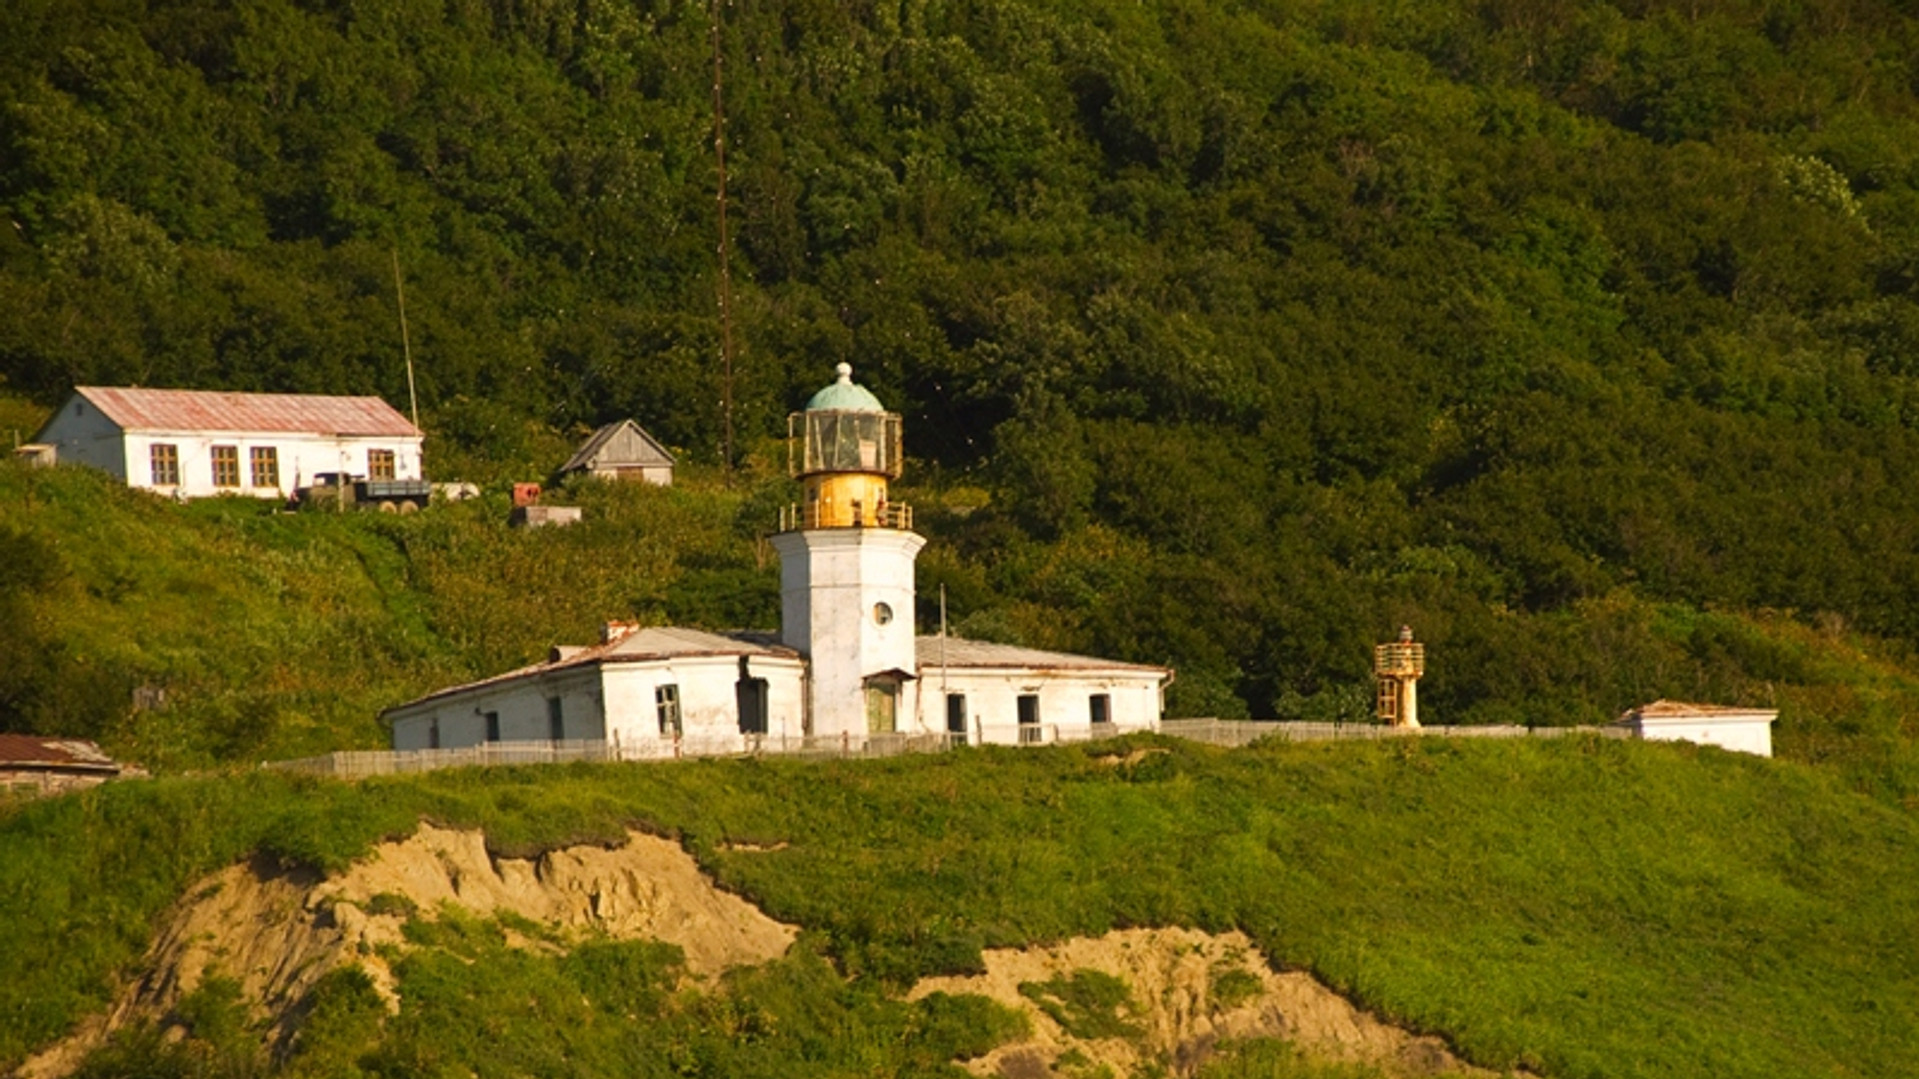 Zhonkier Lighthouse